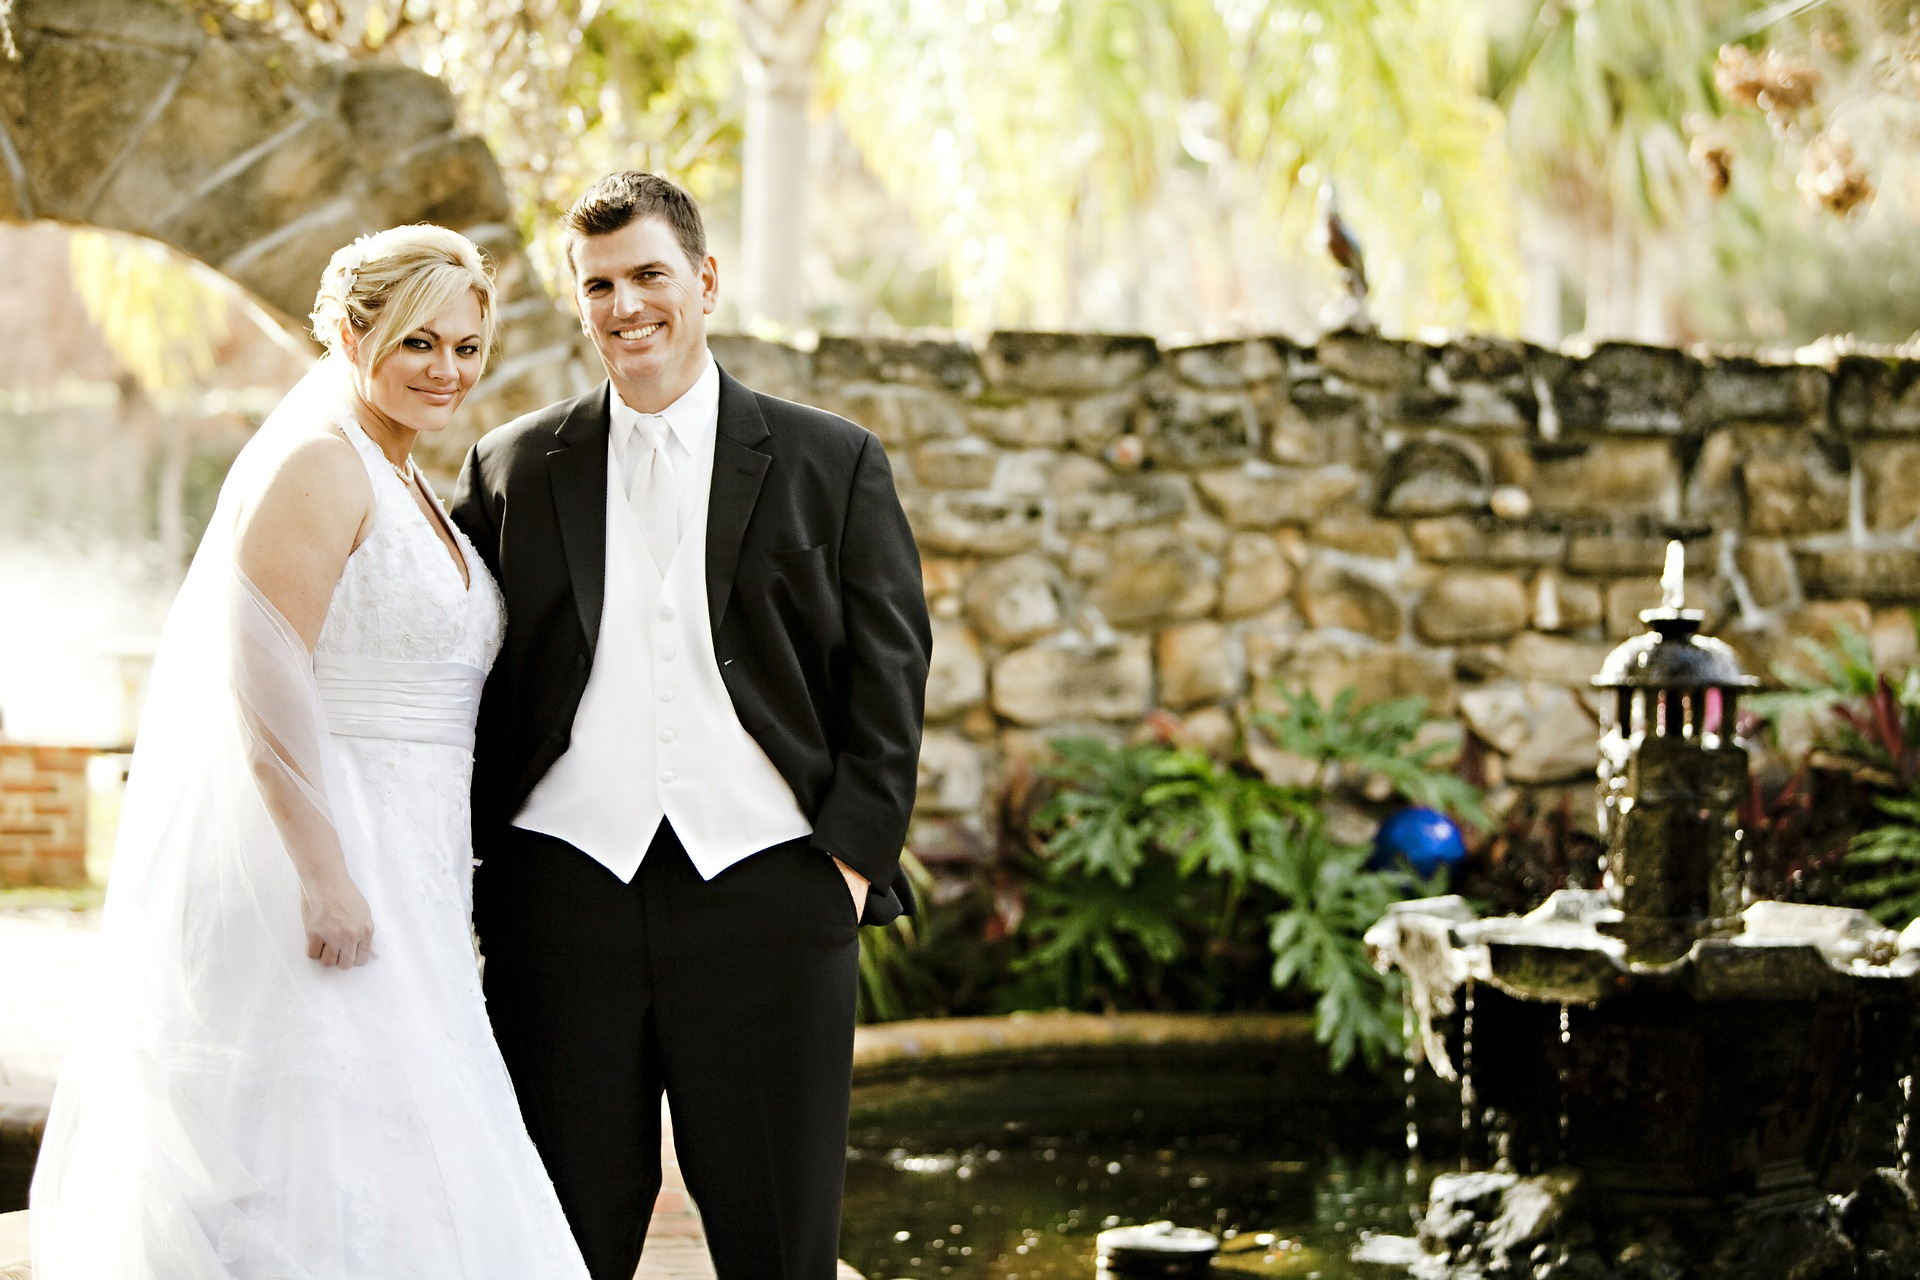 Find Your Plus Size Wedding Dresses Here